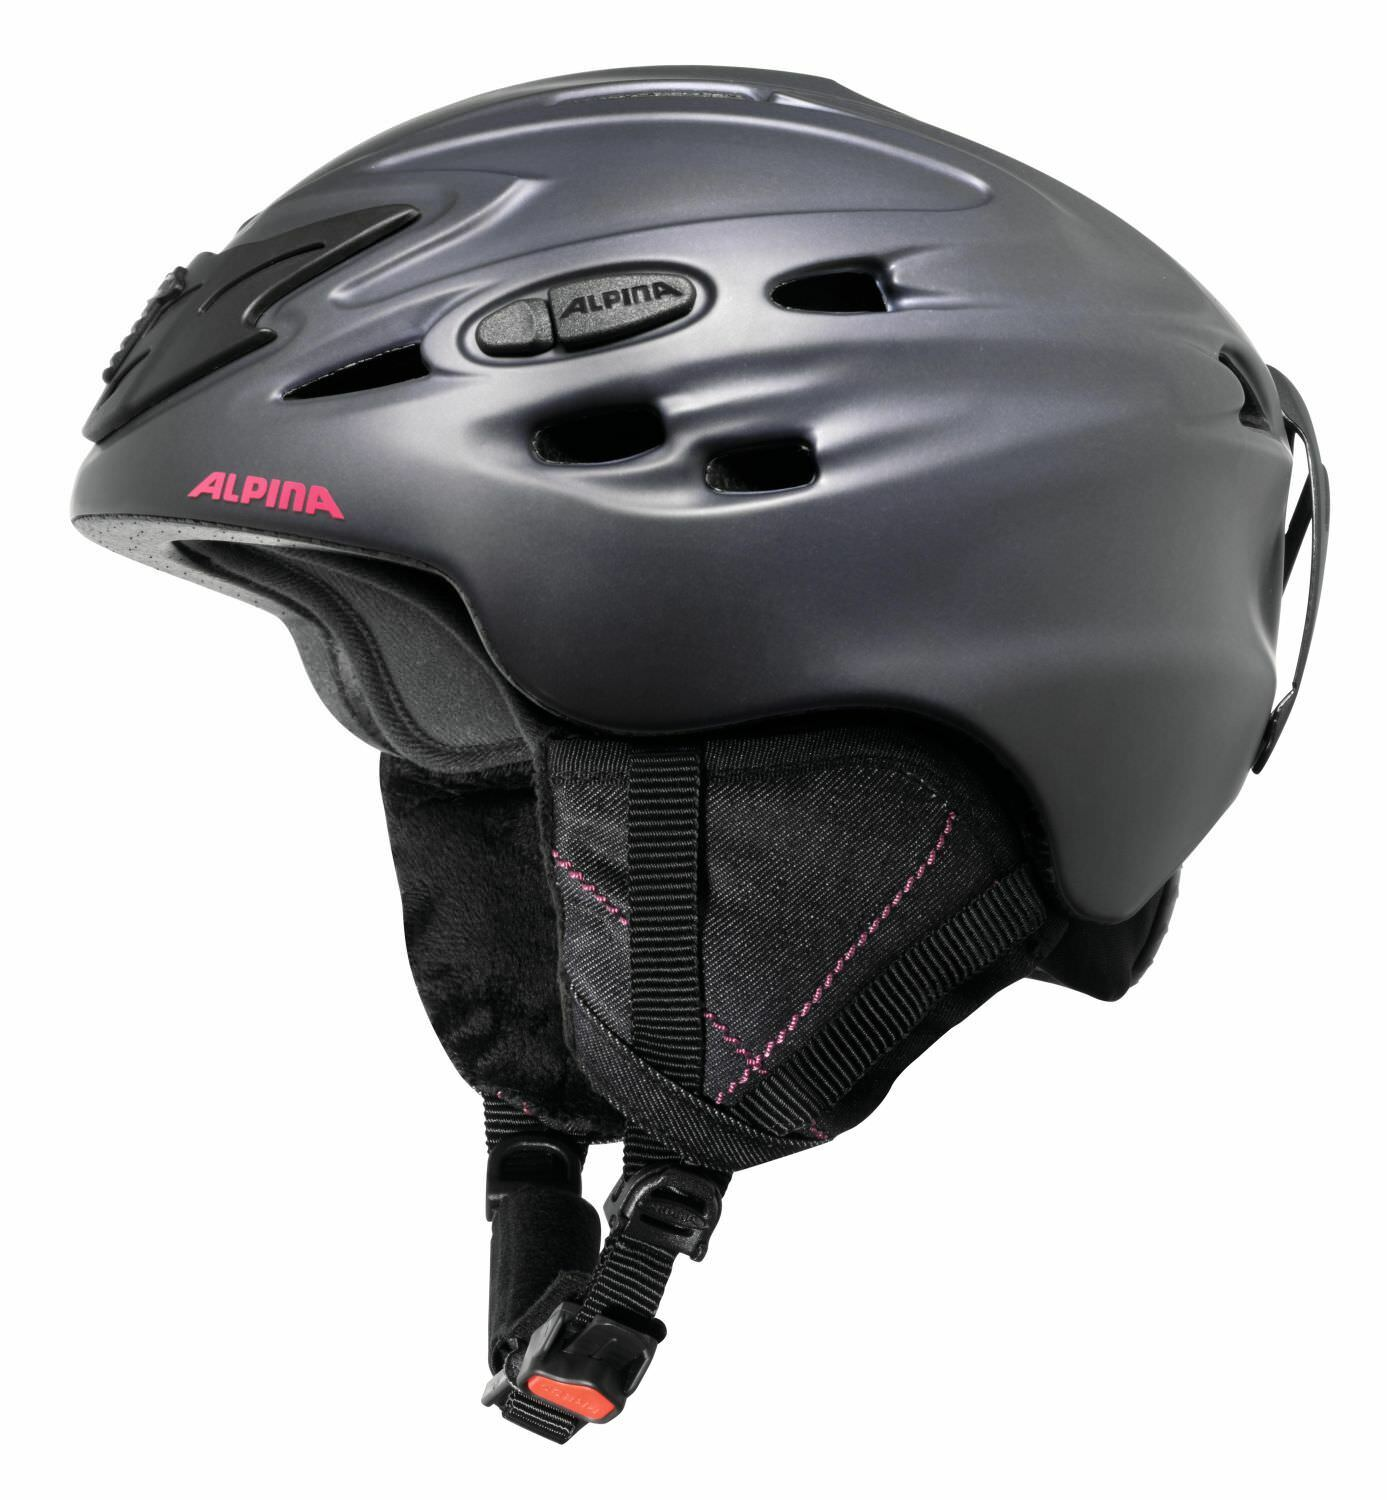 Alpina women Casco de Esquí Ski Helmet Scara Nightbluee-Denim Mate